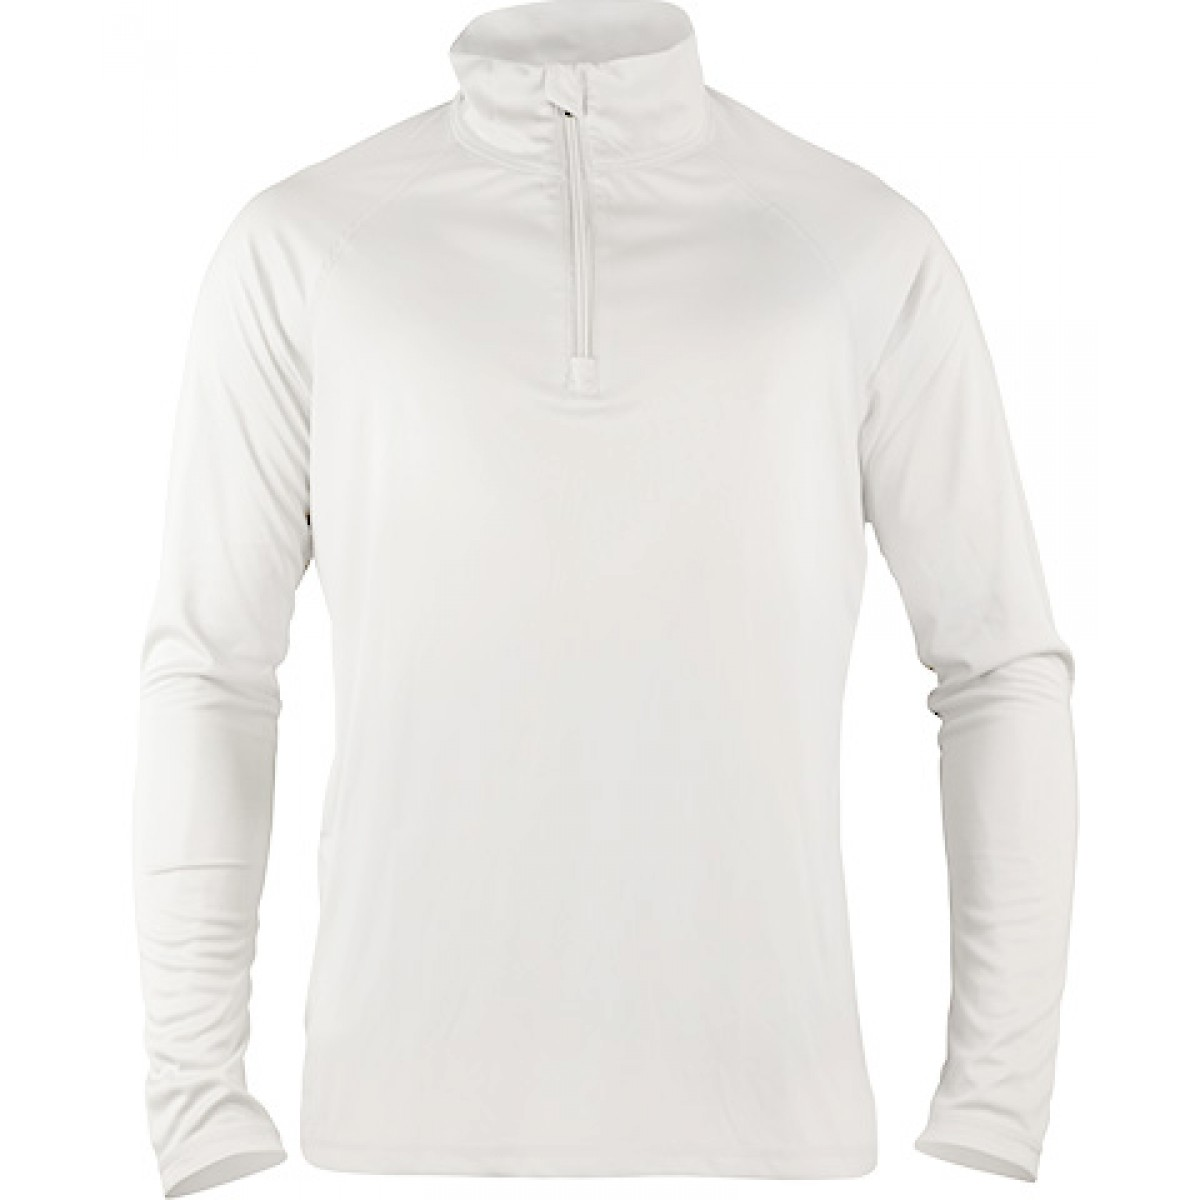 Quarter-Zip Lightweight Pullover-White-S